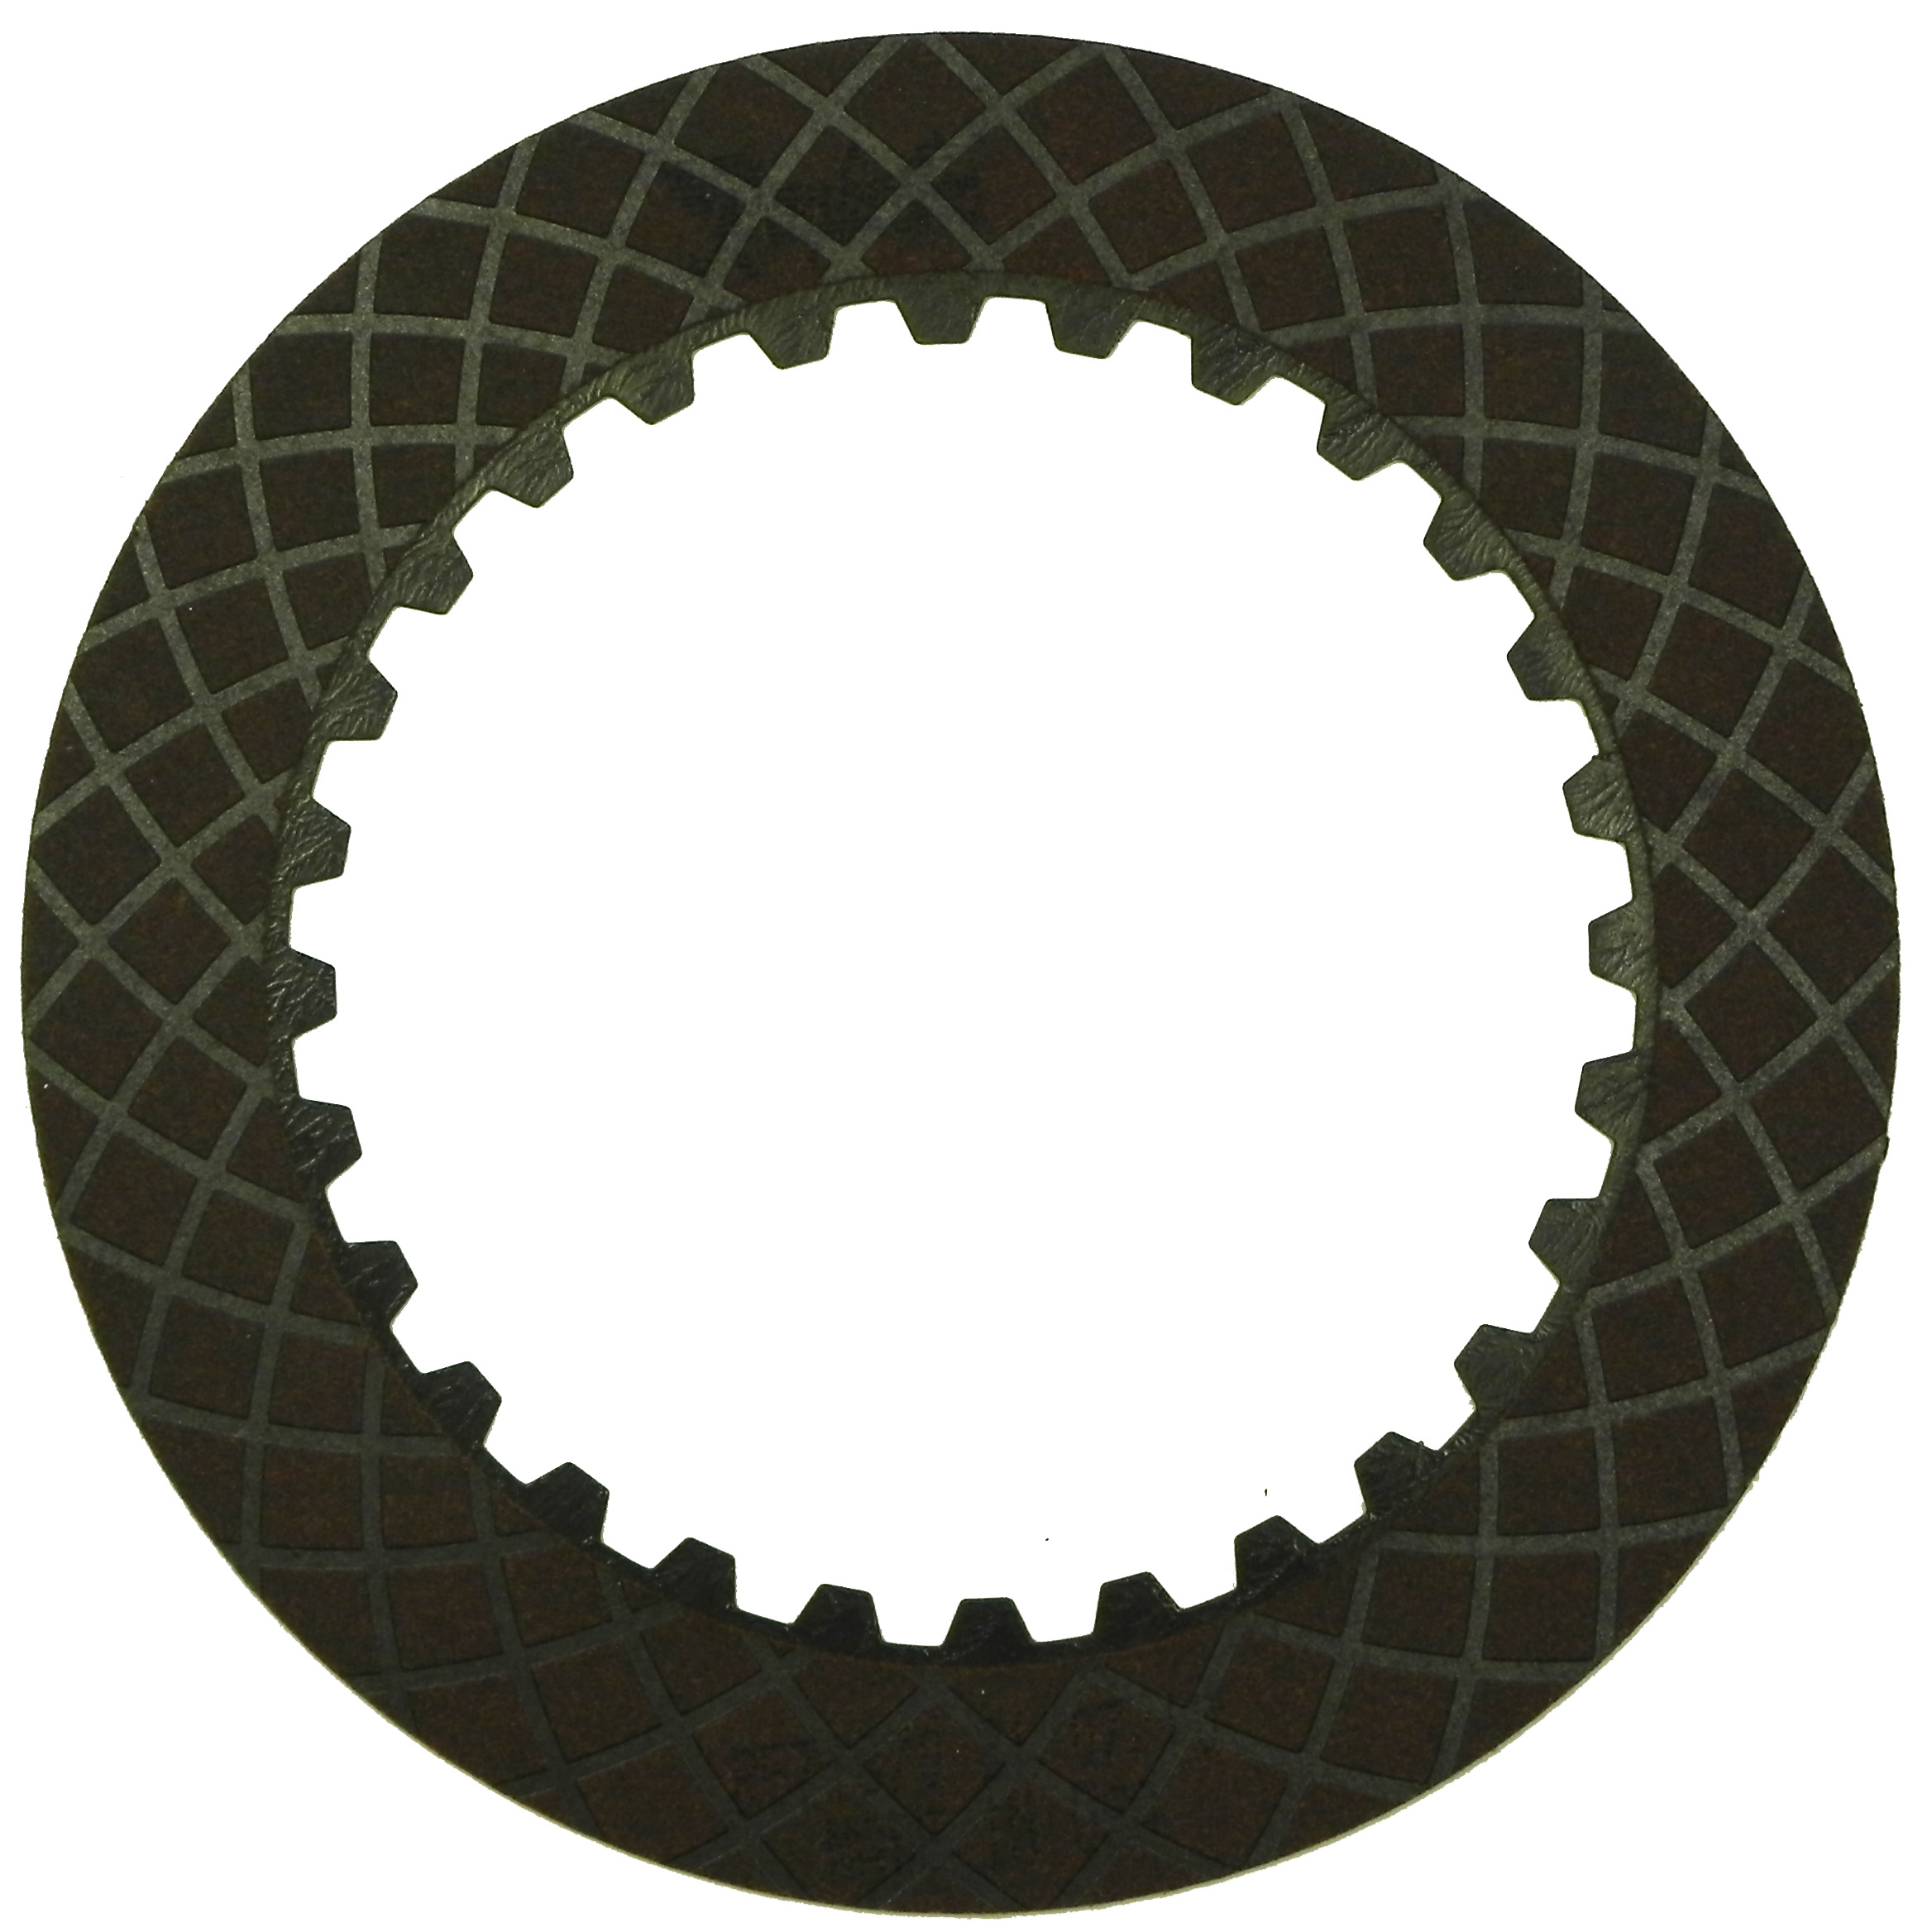 5 SPEED MURA (05-07), P34A, P35A , PVLA (07-08), PVGA (07) GPX Friction Clutch Plate